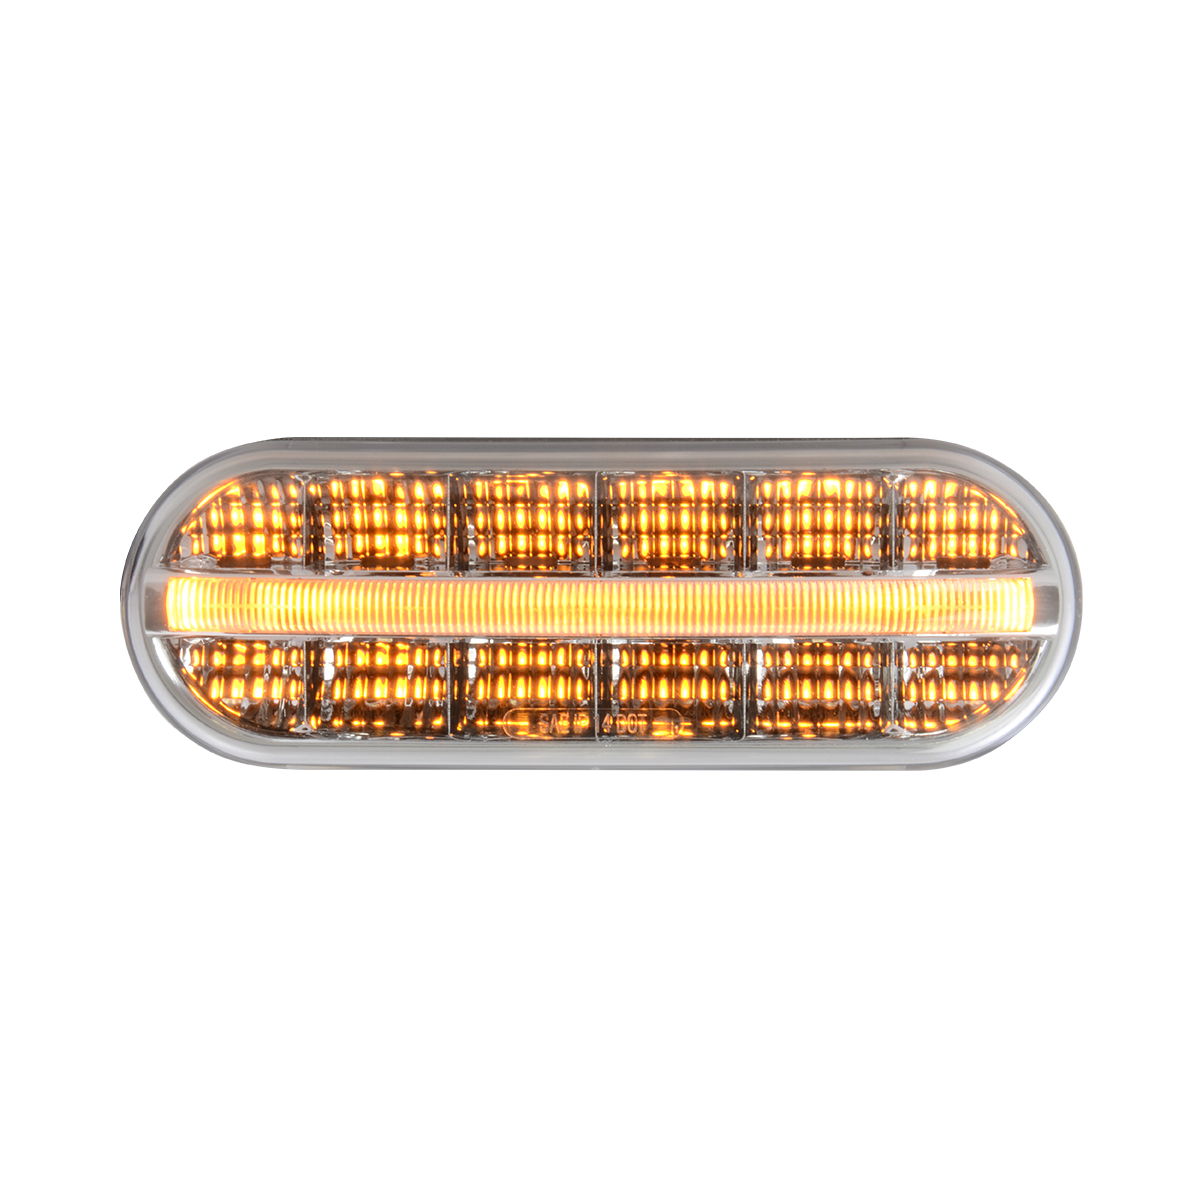 74851 Oval Prime Spyder LED Light in Amber/Clear